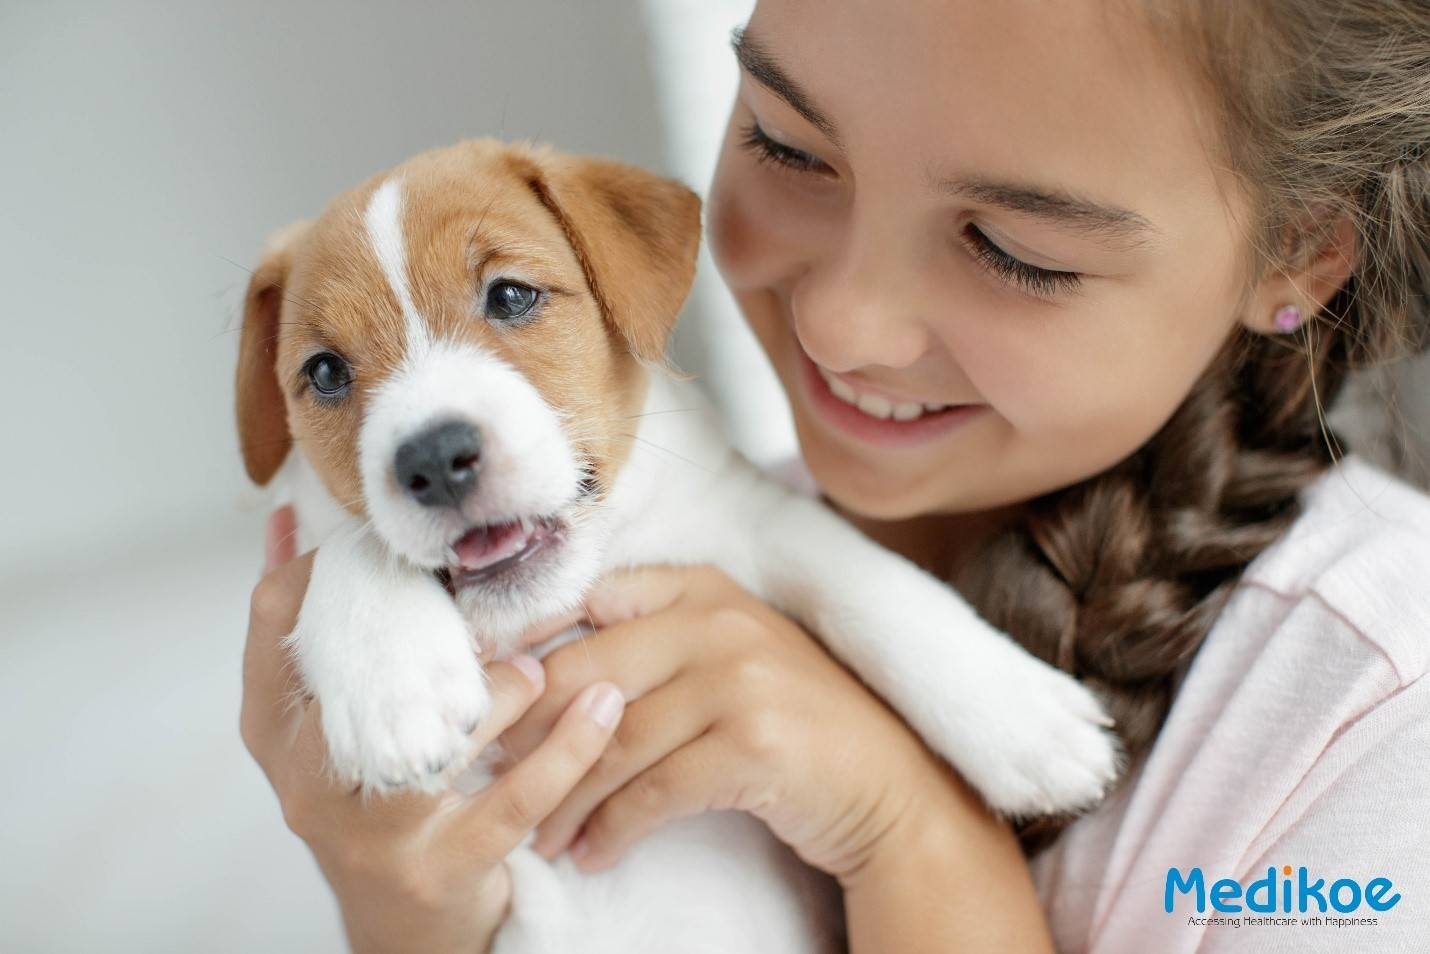 Are Dogs Able to Sense Human Emotions?